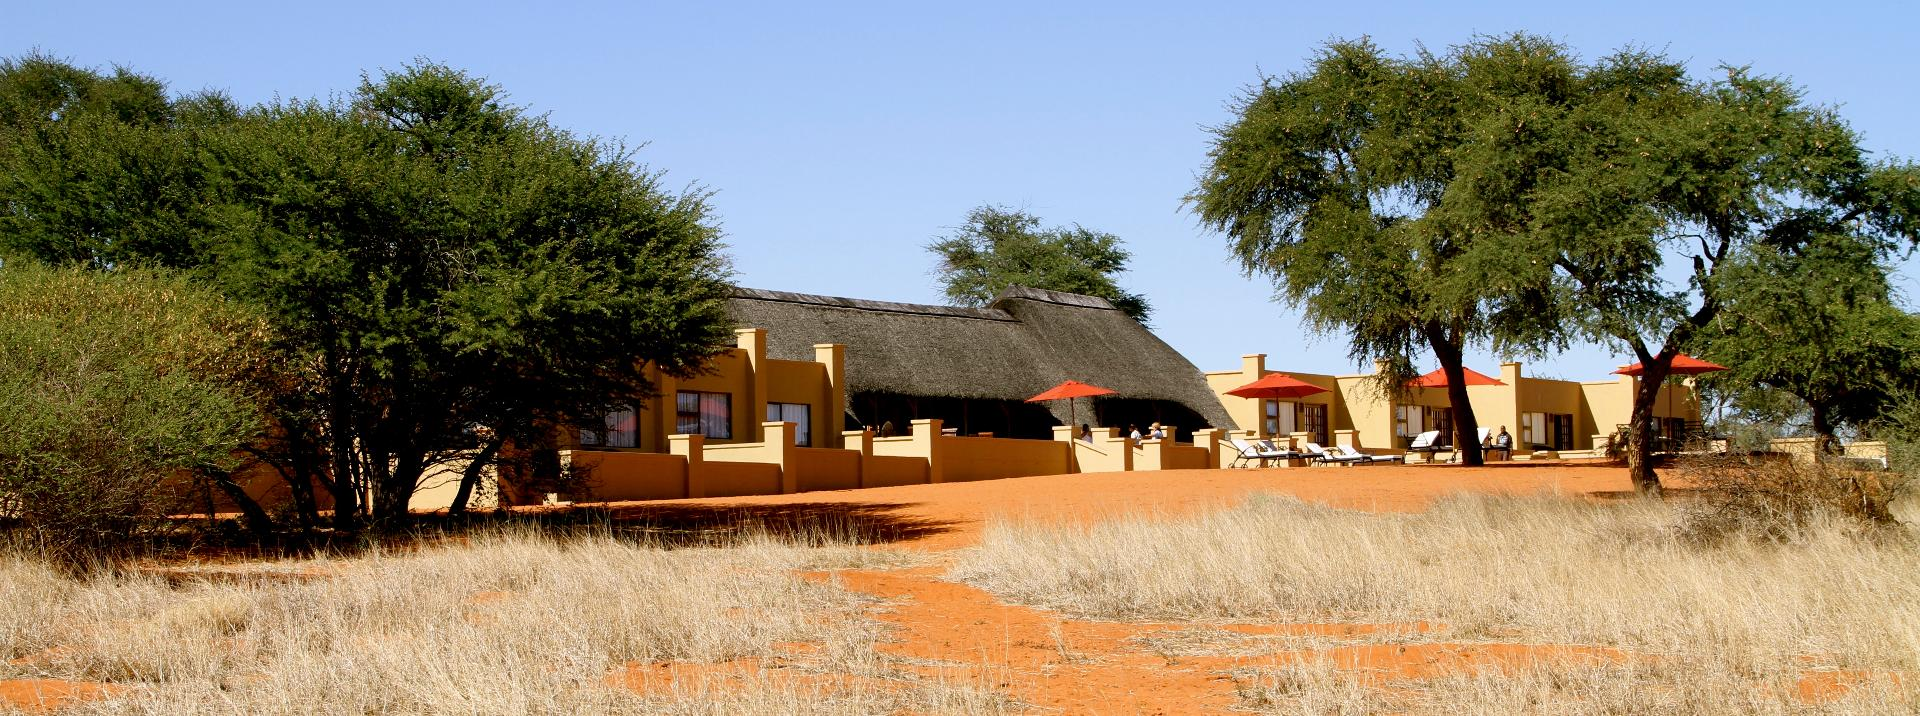 Zebra Kalahari Lodge